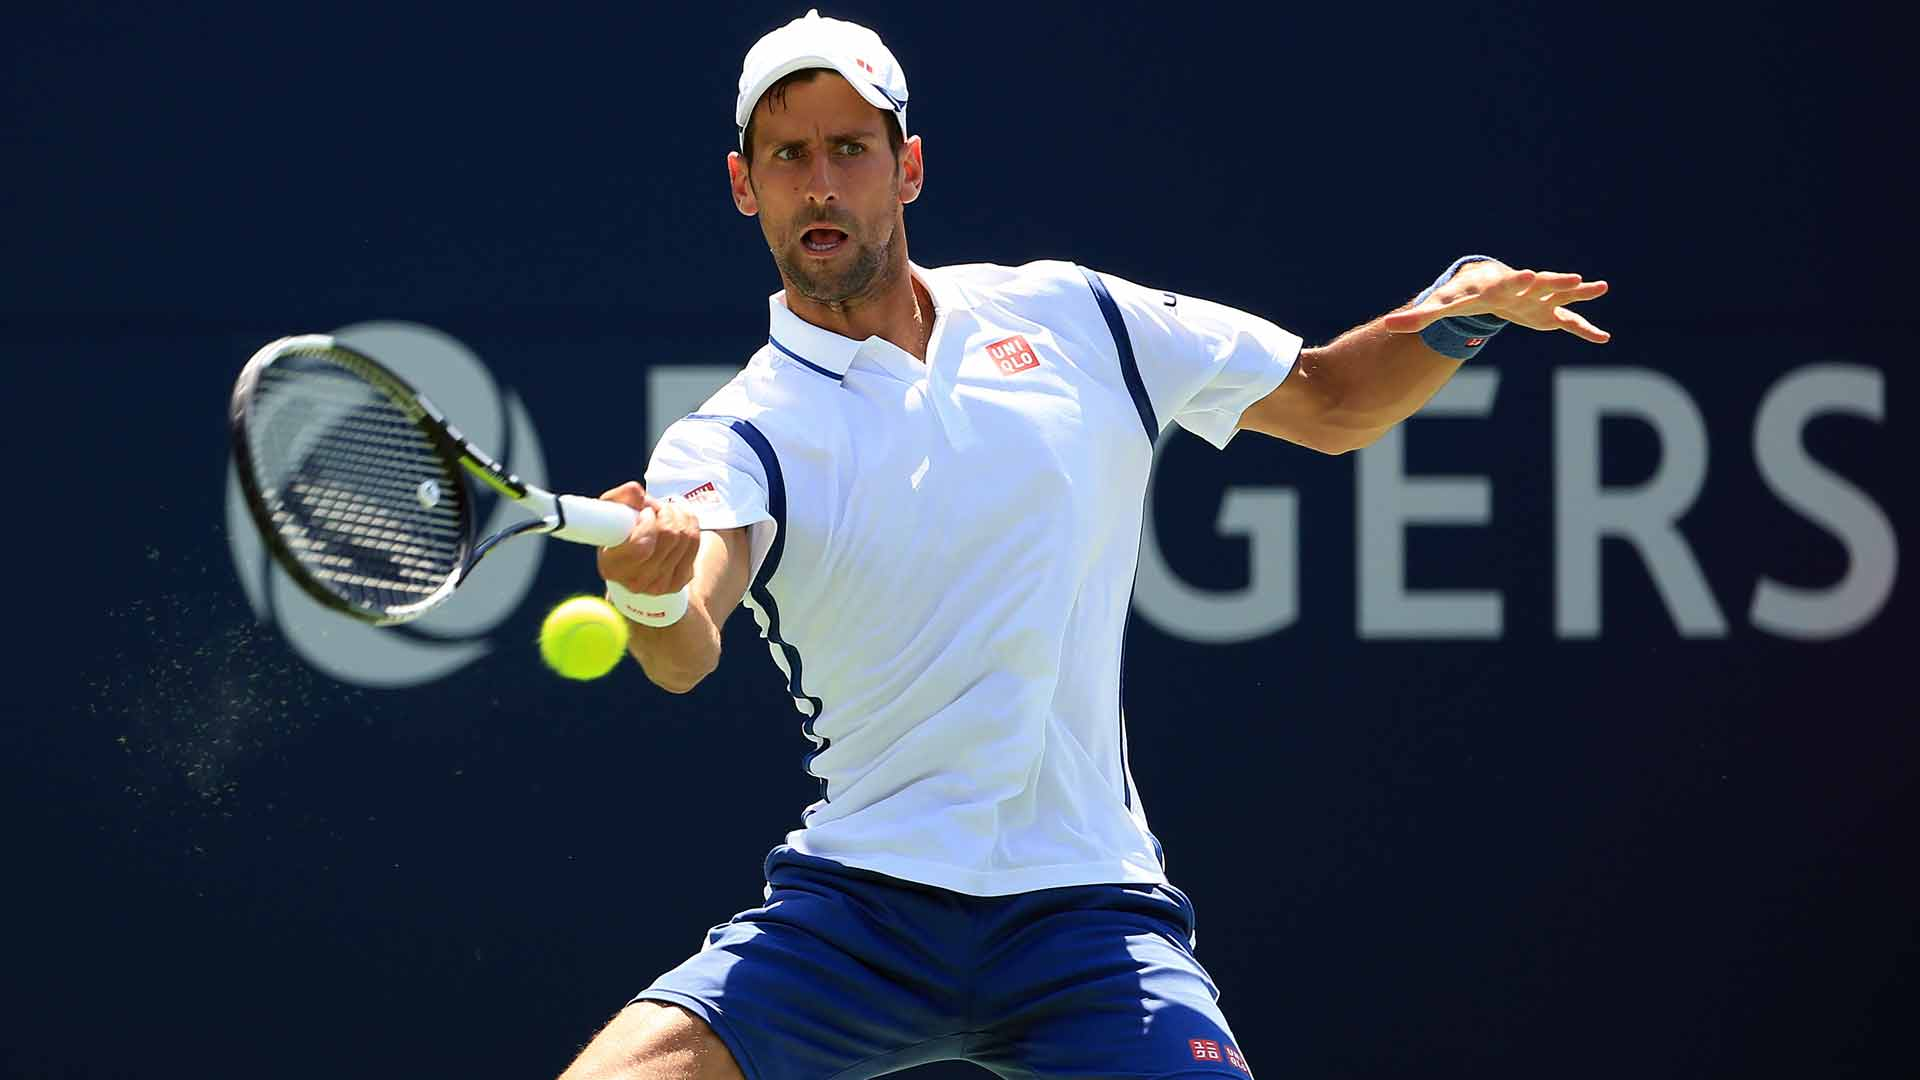 Novak Djokovic has remained one of the elite players on the ATP World Tour for nearly a decade.